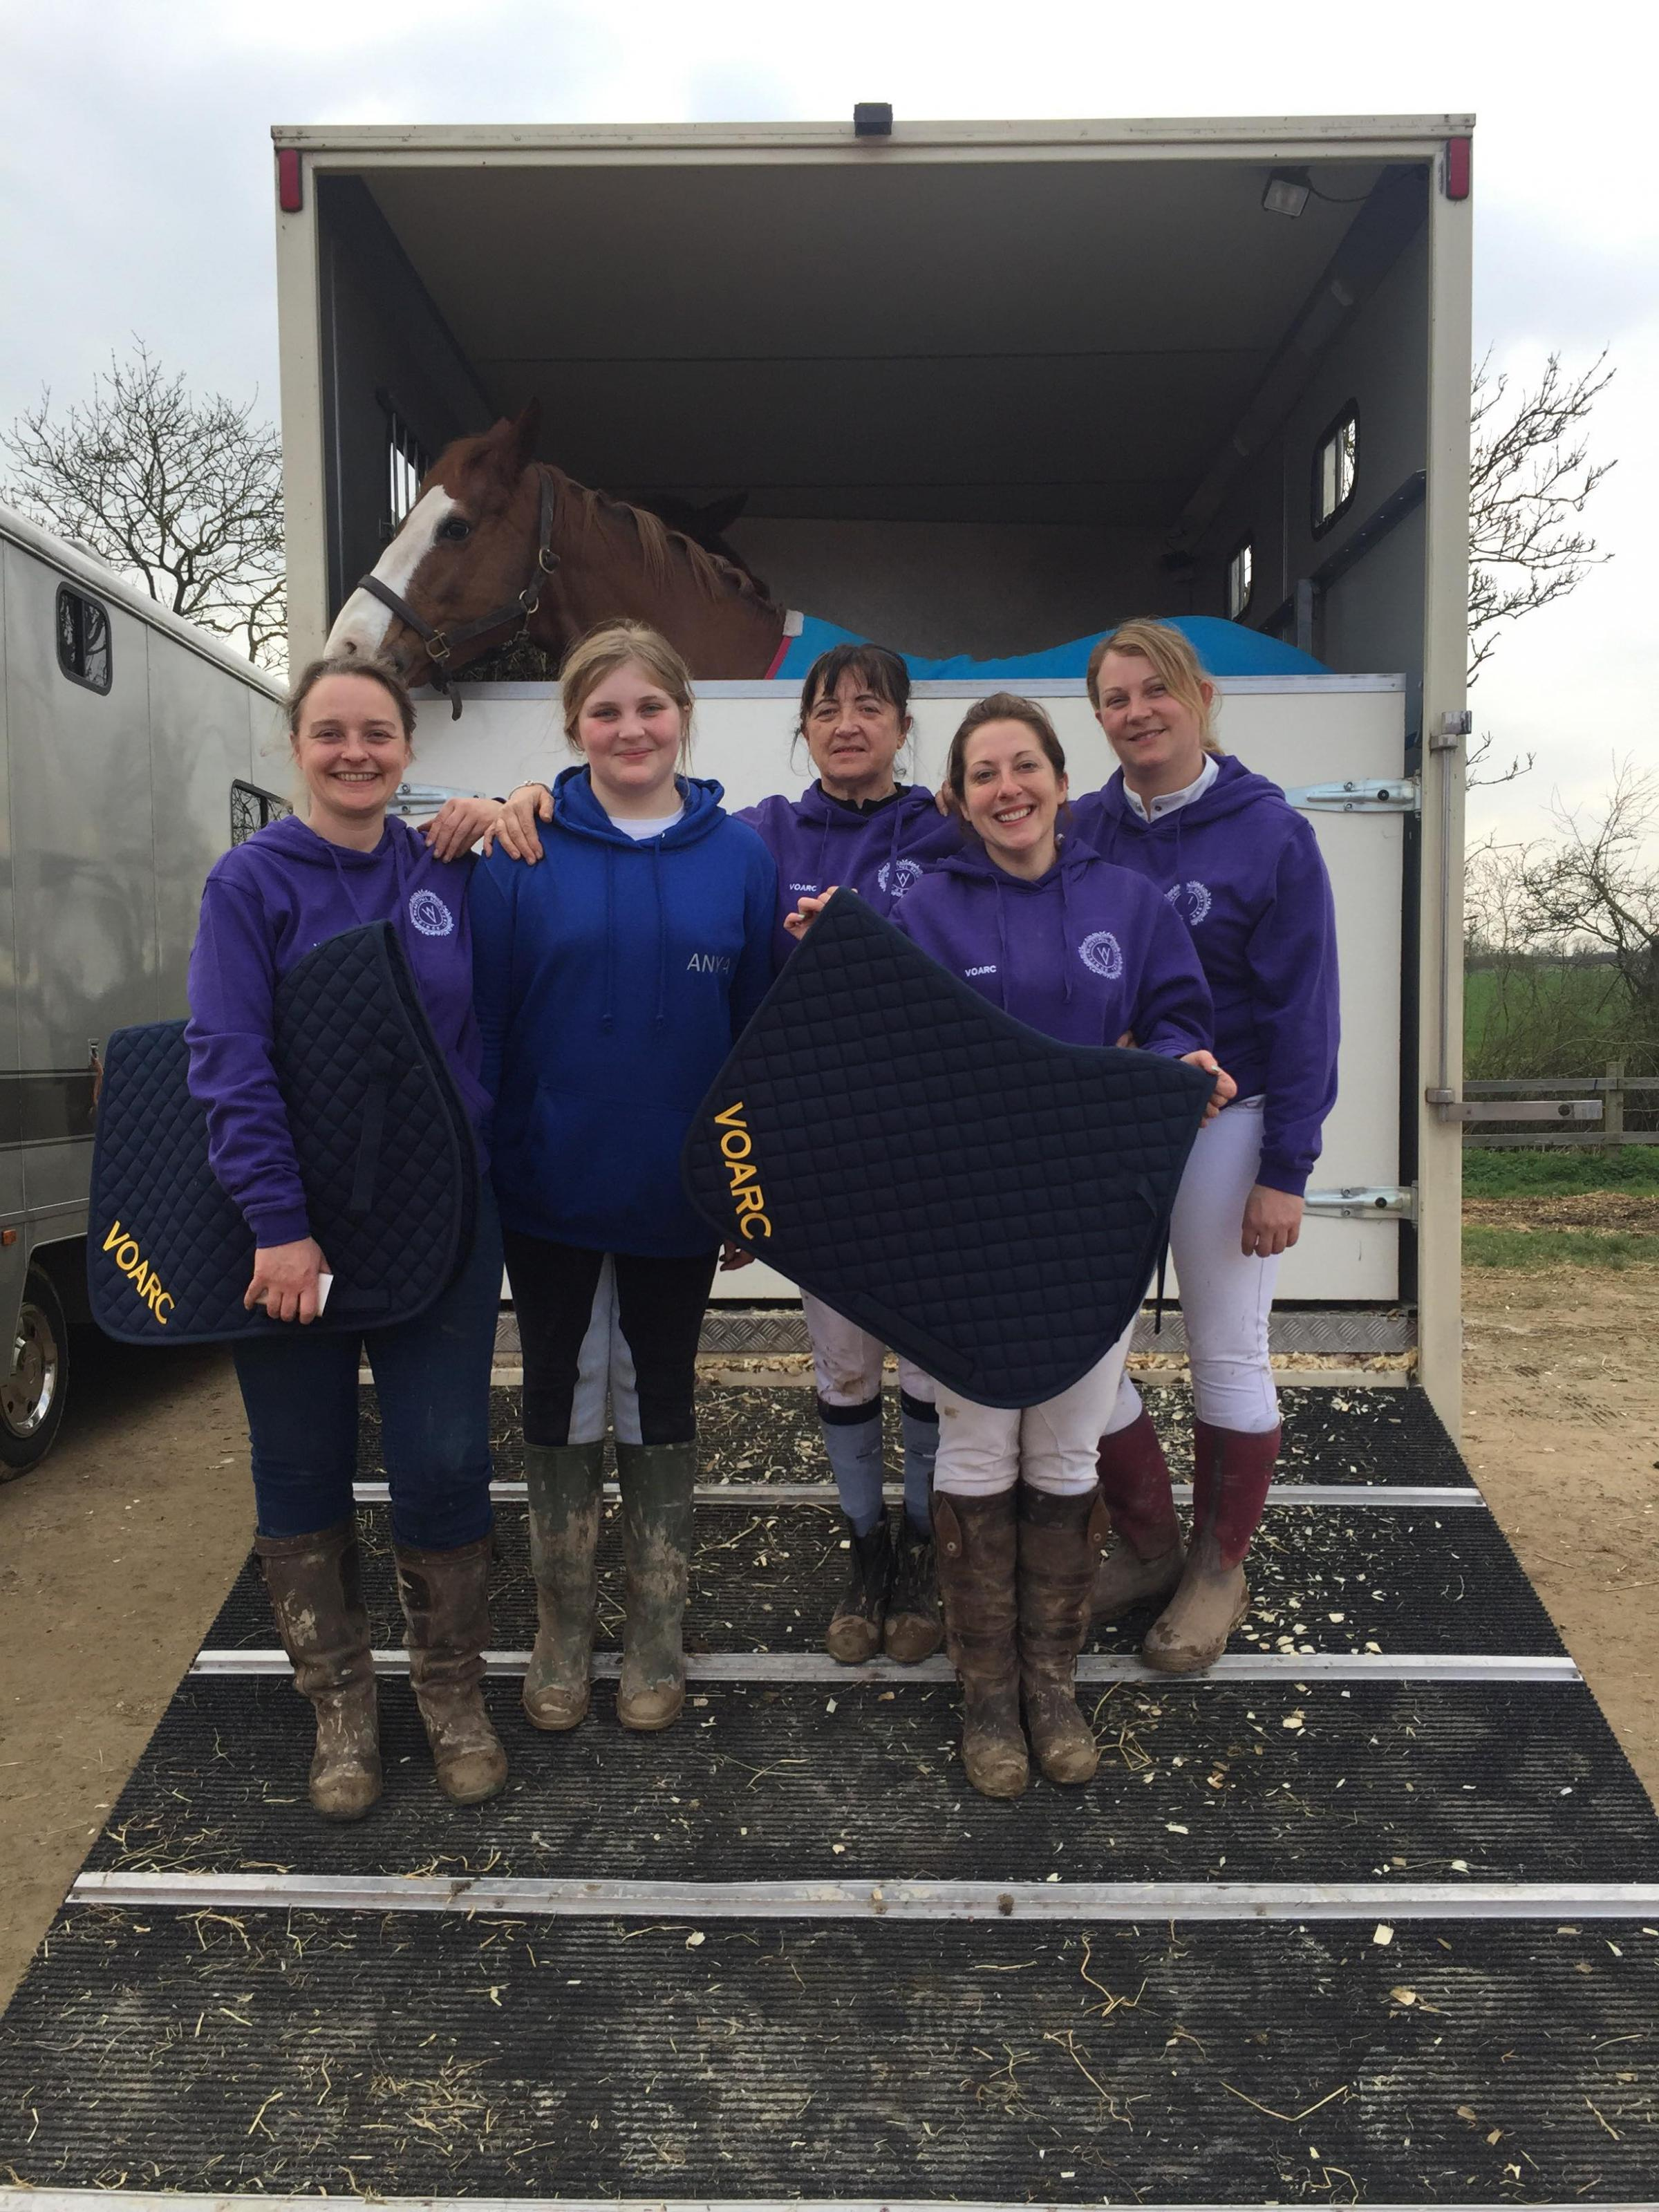 The Vale of Arrow riding club riders who have qualified for the KBIS Winter Showjumping Championships